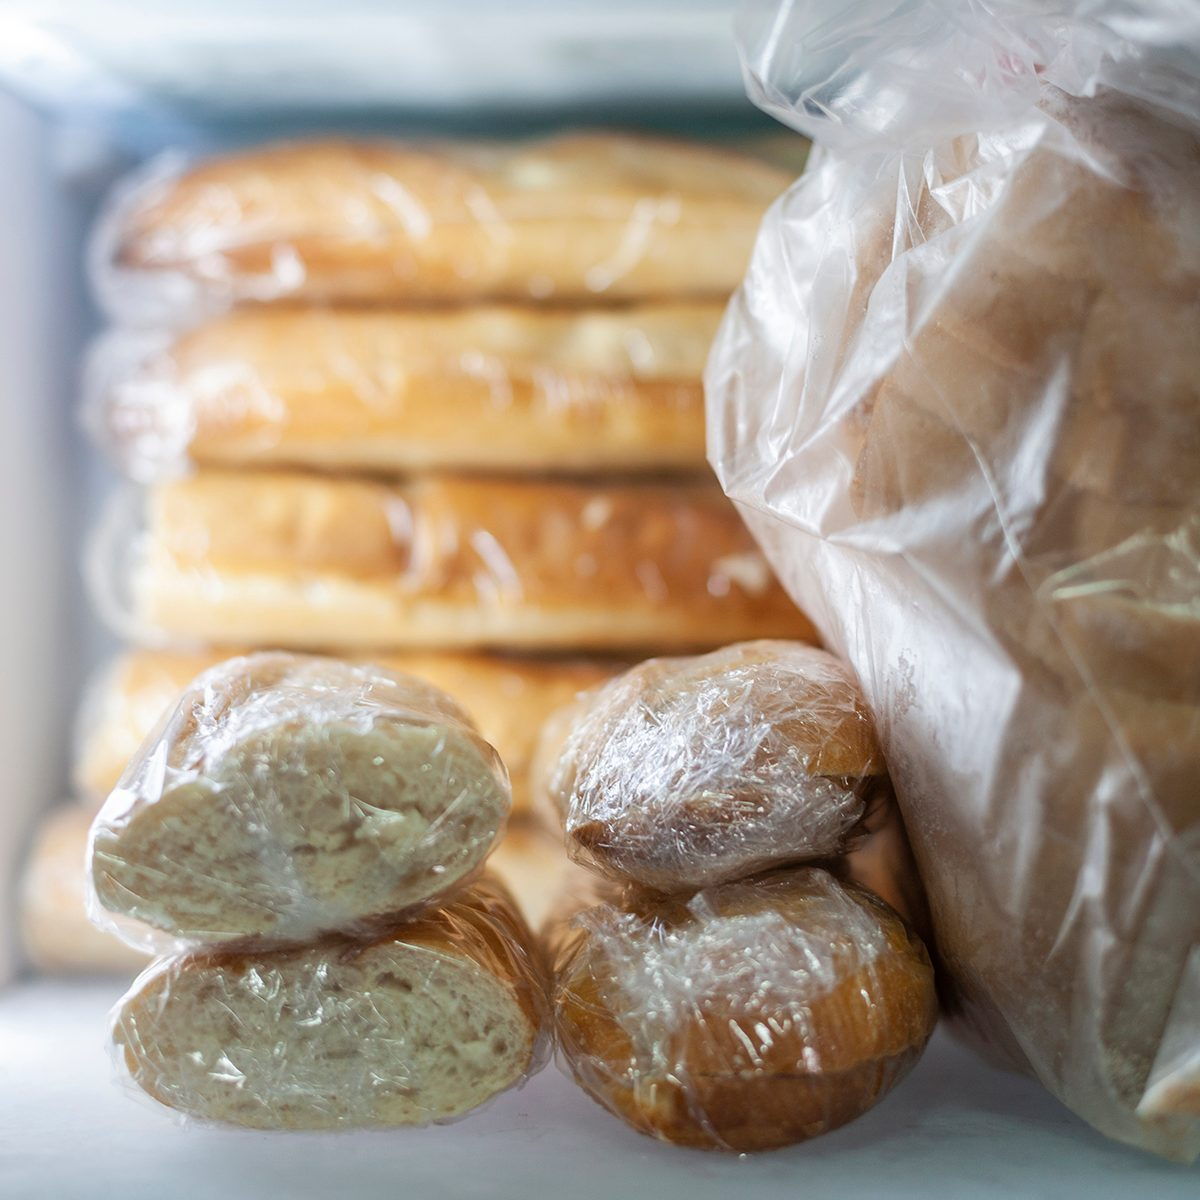 Loaves of bread wrapped in plastic, to avoid going to the market every day to buy in times of corona-virus. Spain, Europe